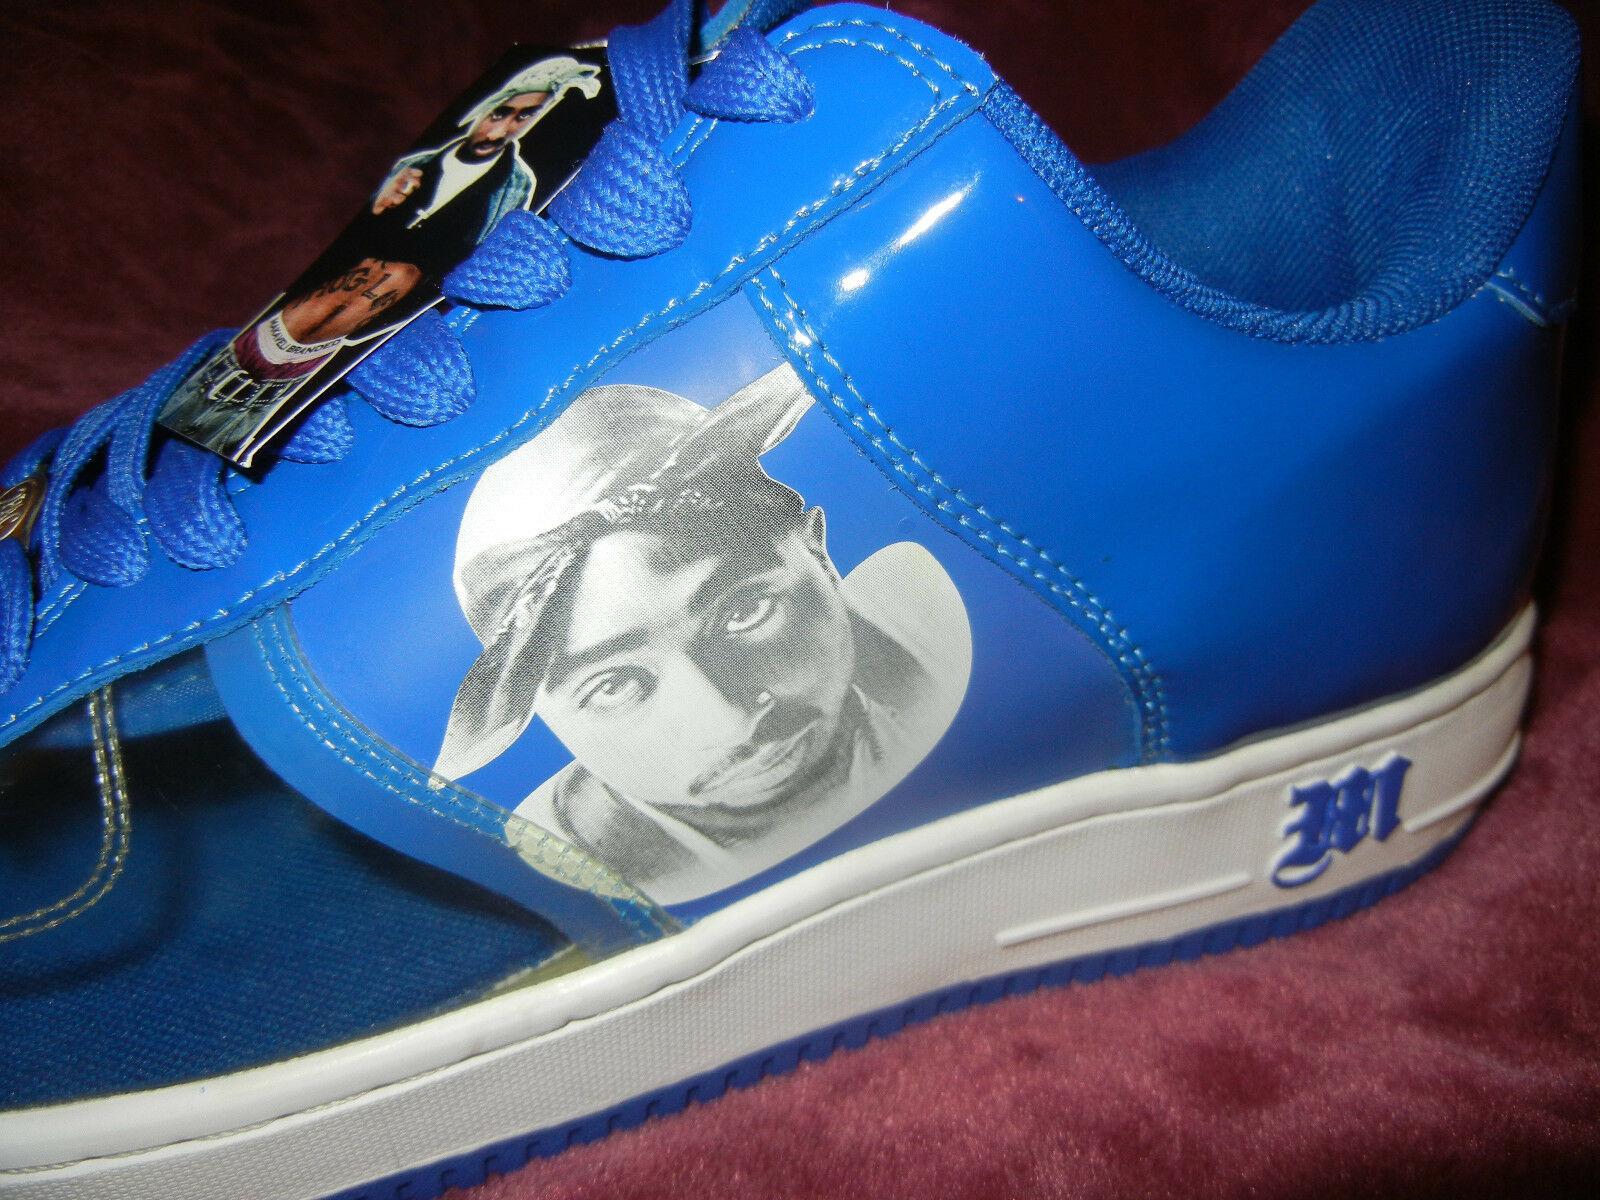 TUPAC SHAKUR #Makaveli #AllEyezOnme #2PAC size size size 13 scarpe da ginnastica SHOES Redemption DS 1ad75b